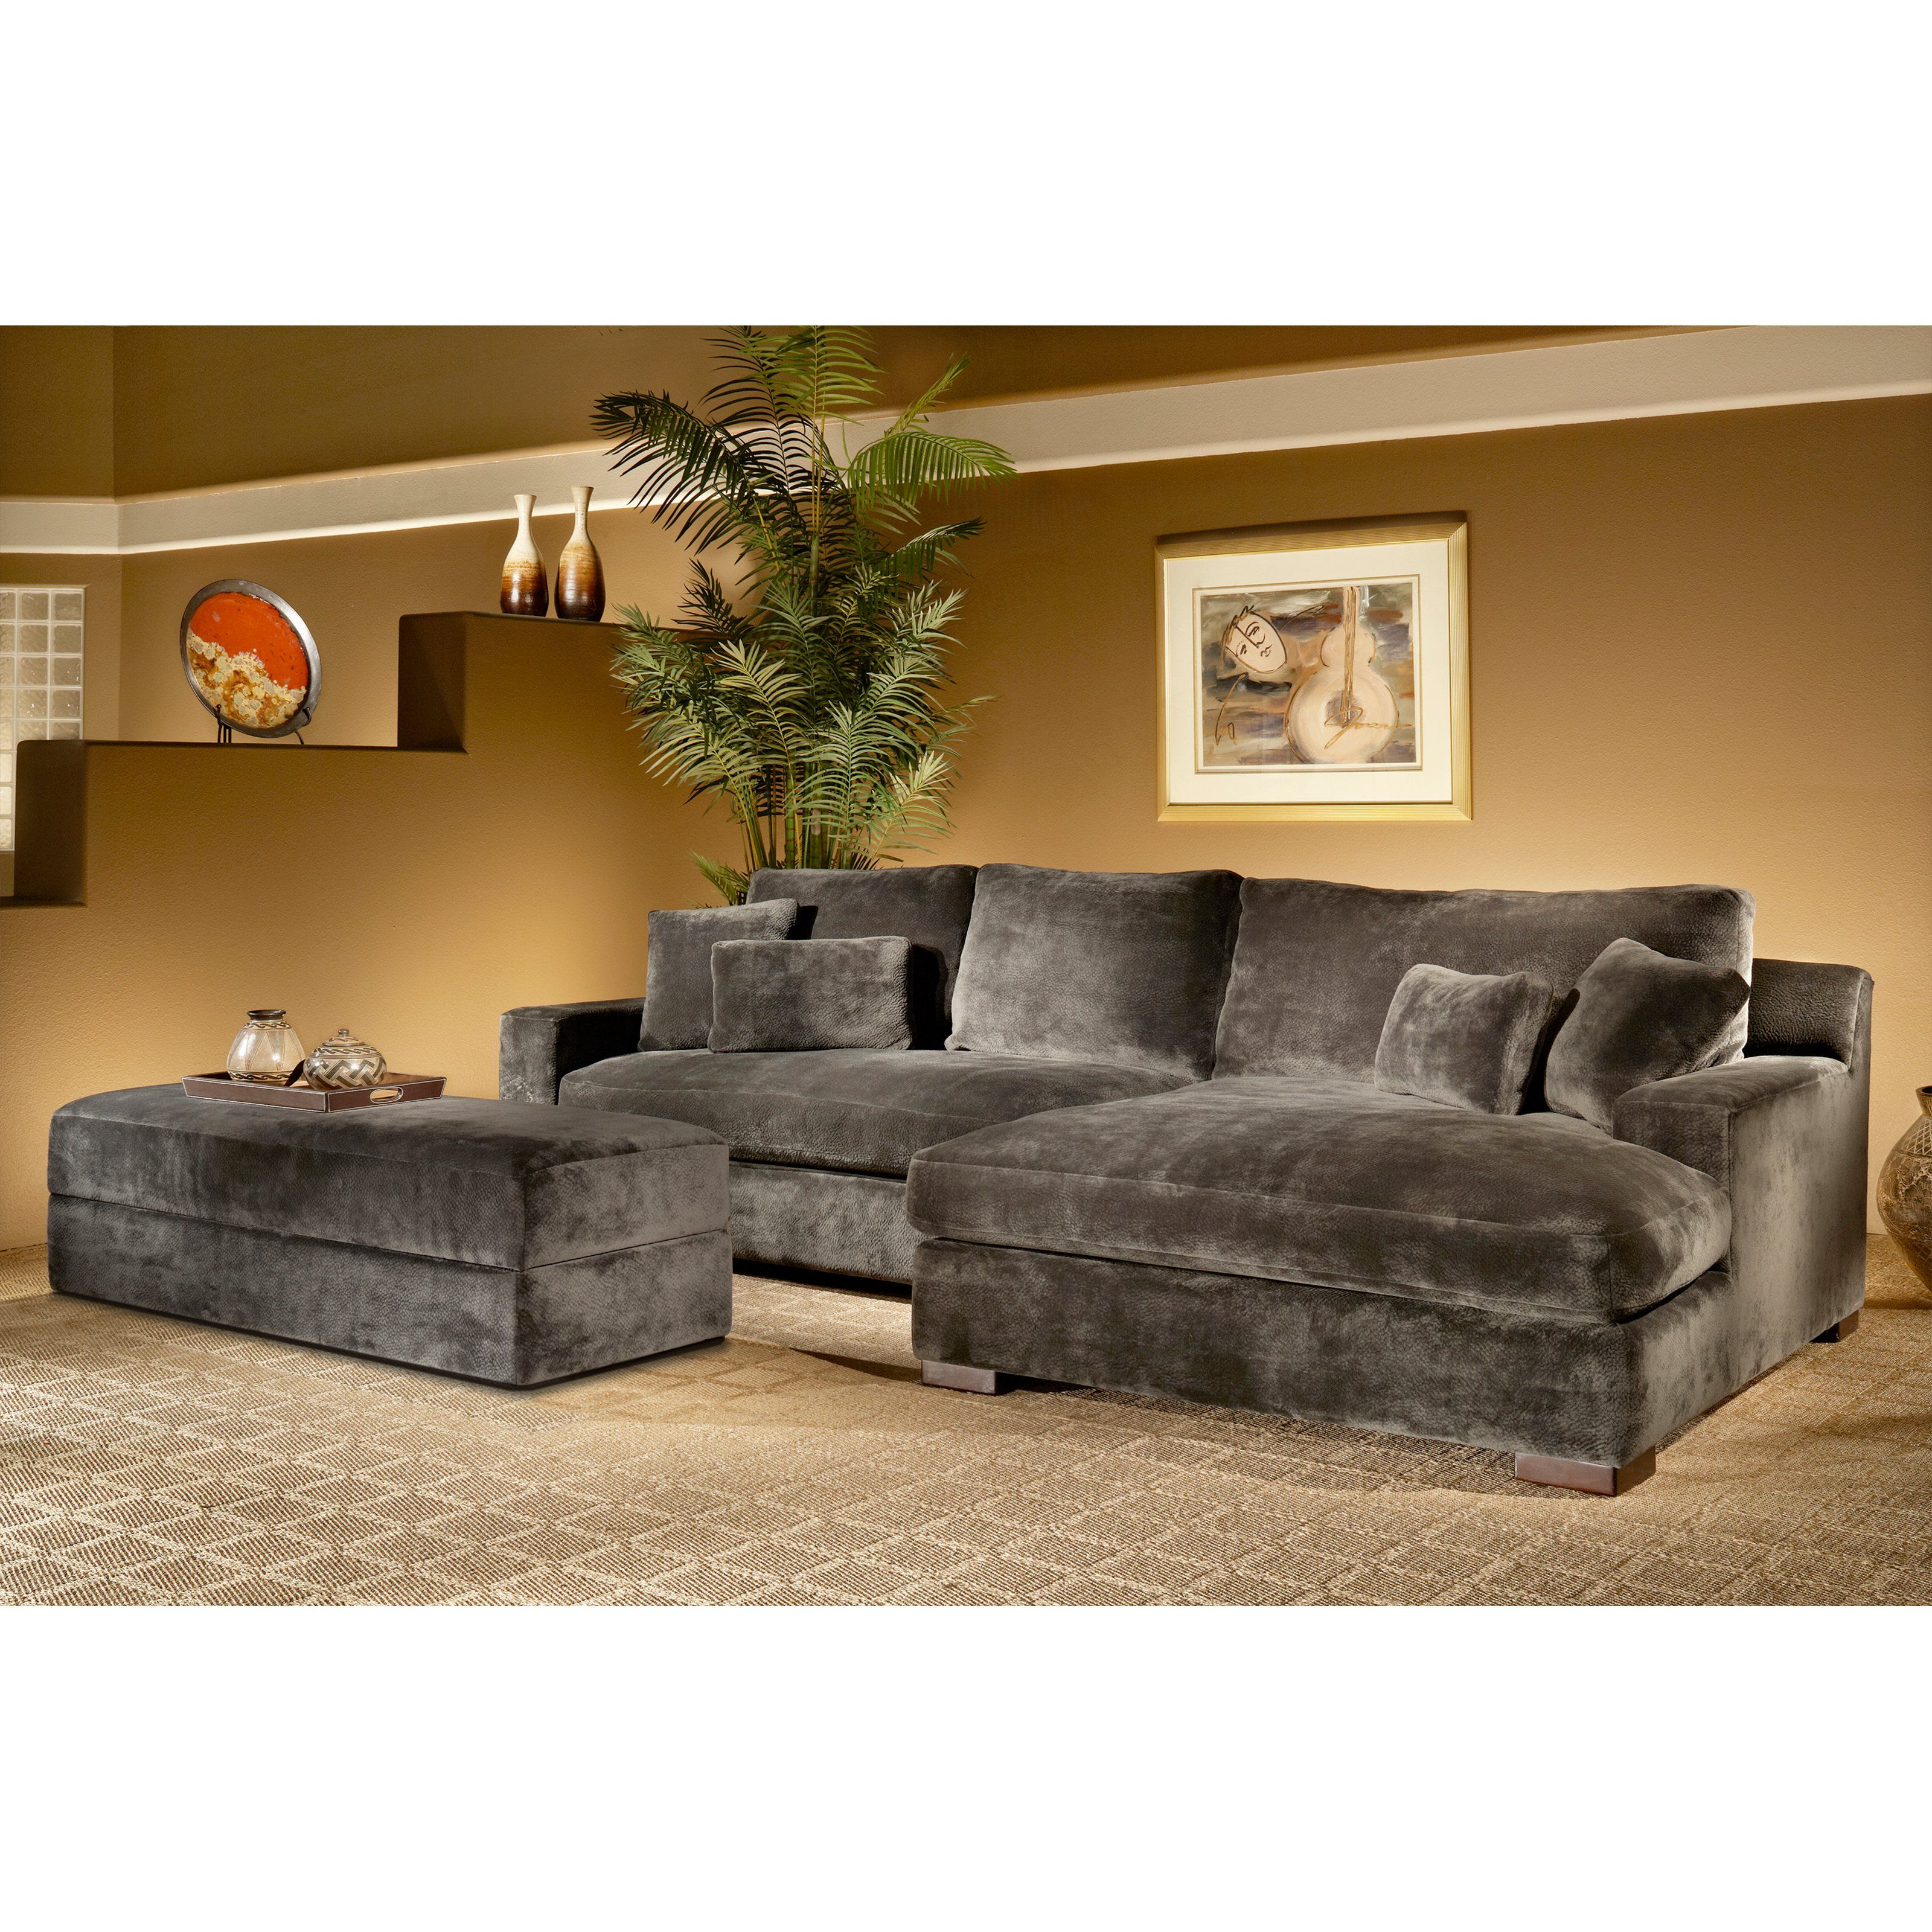 fairmont designs doris 2 piece sectional sofa with storage sectional furniture sets at talsma's sectional furniture sale